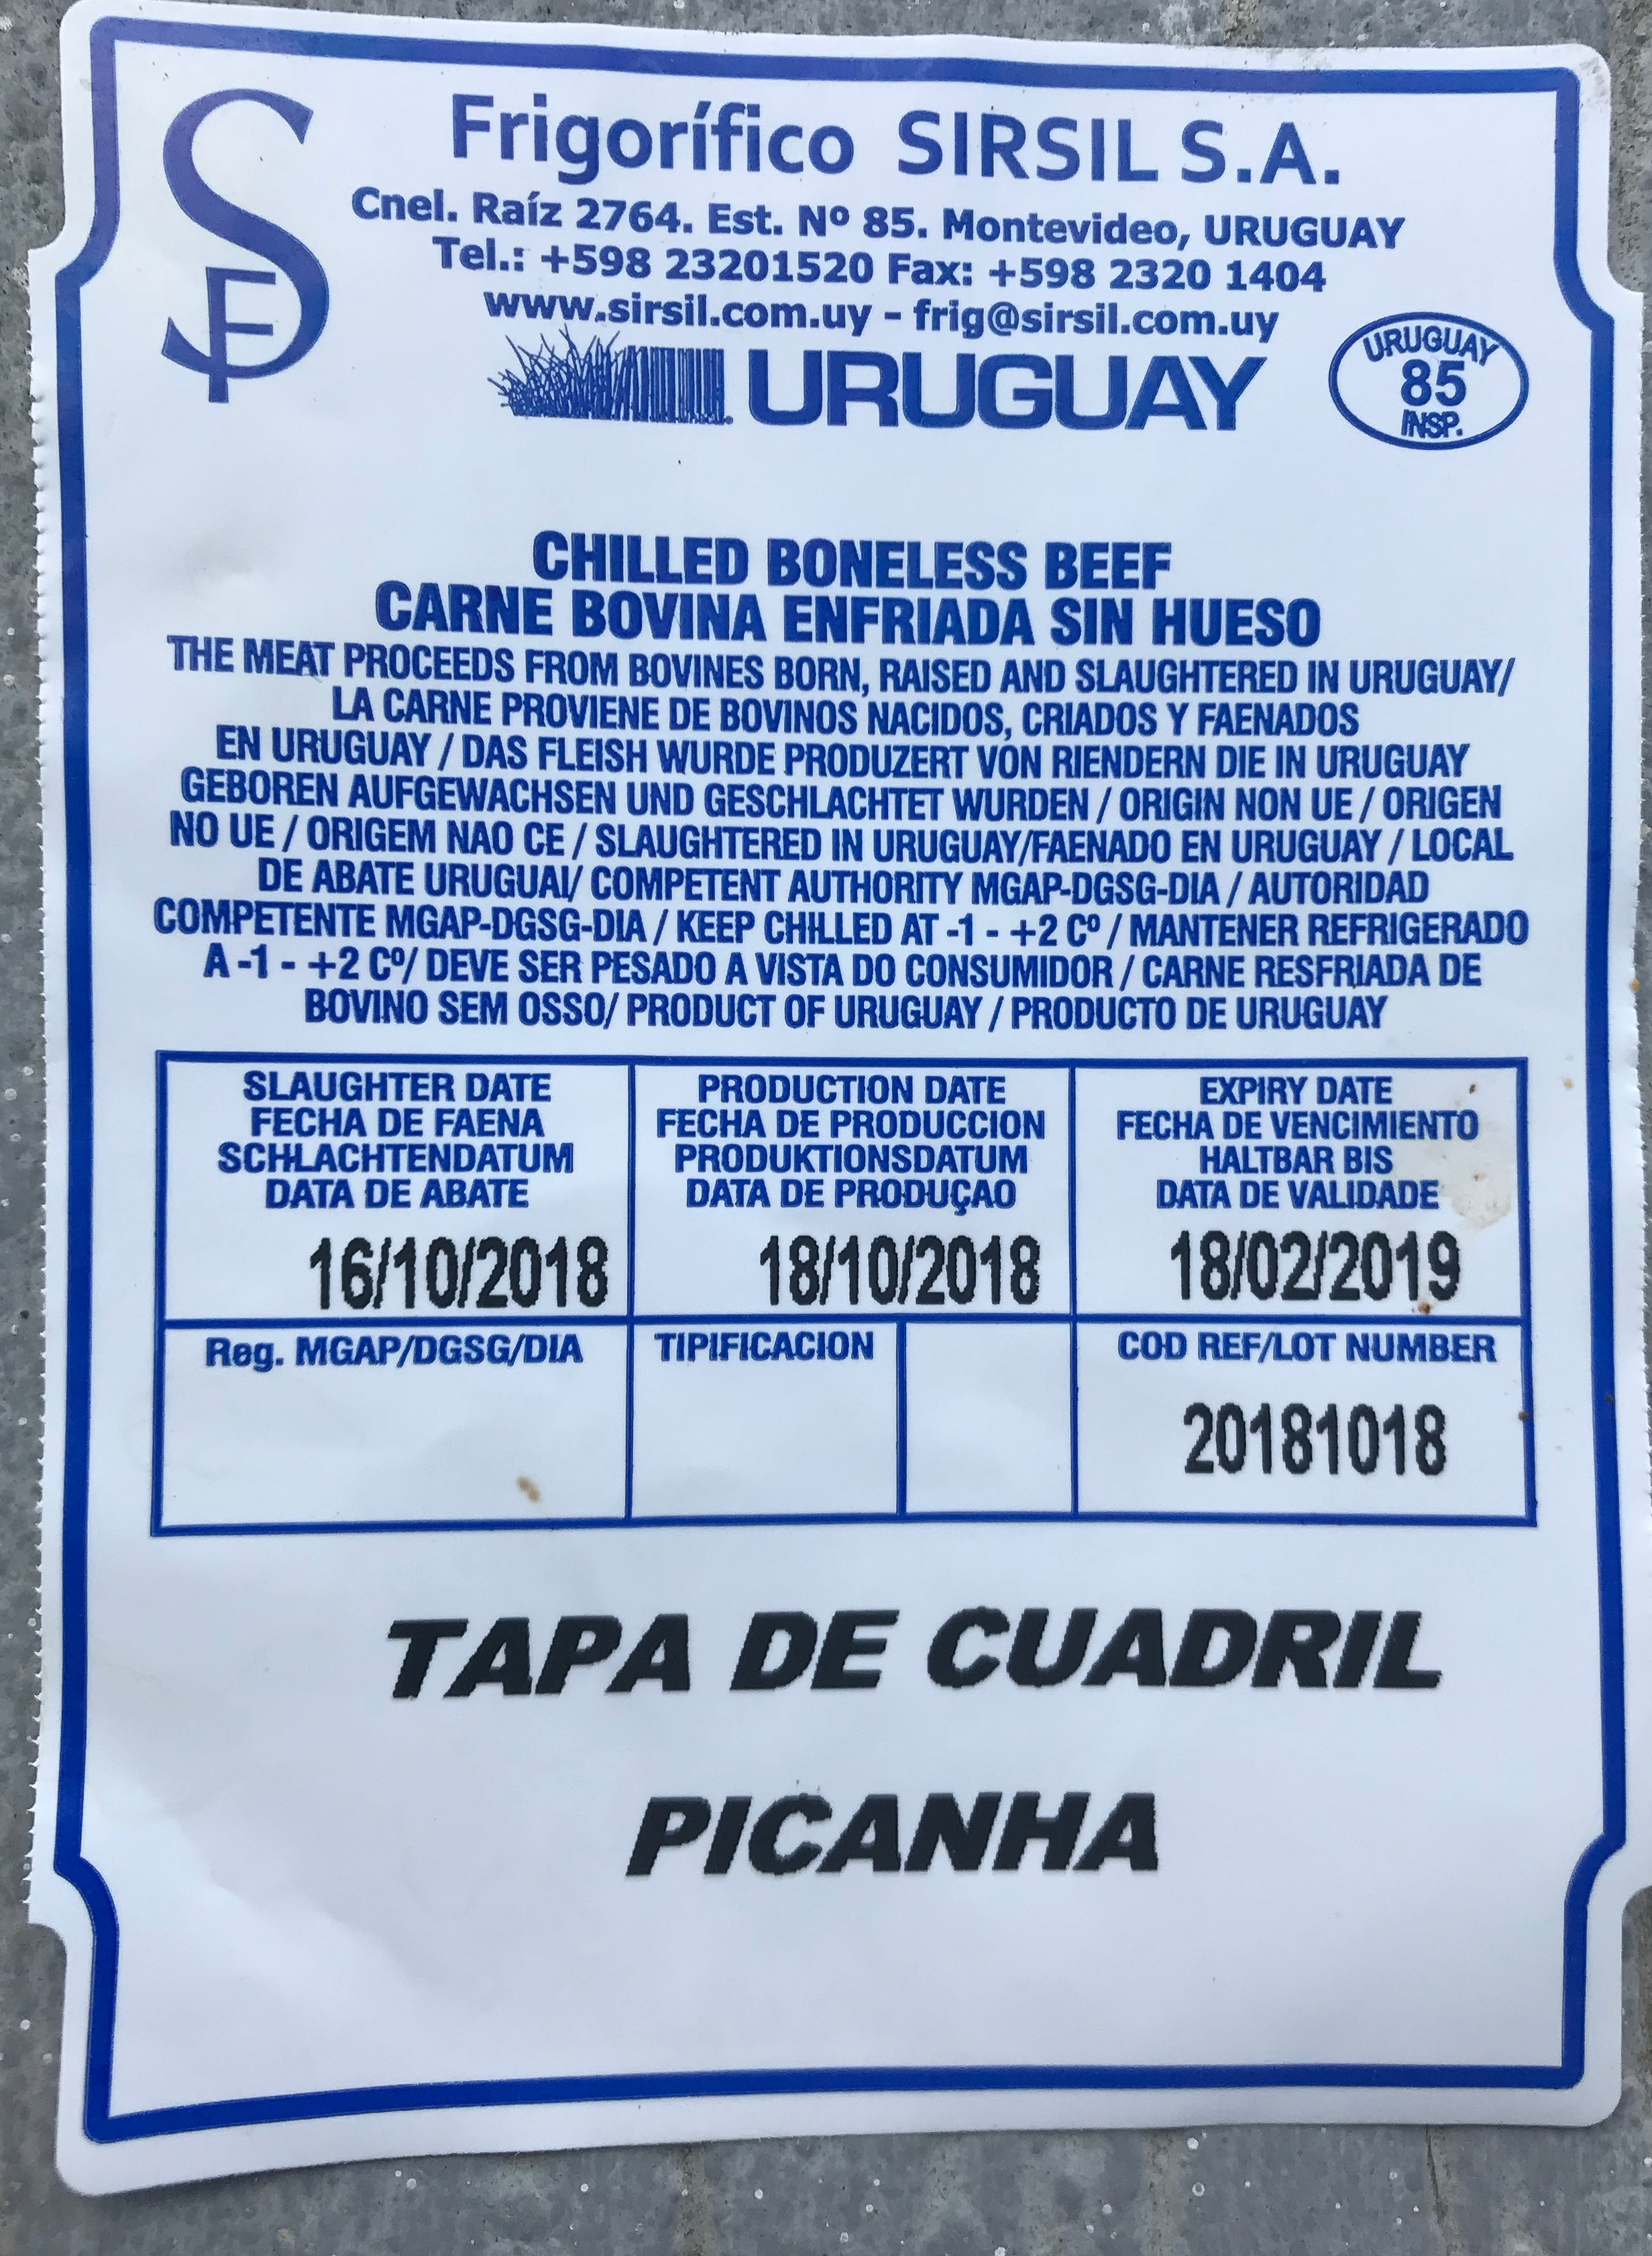 certificate of authenticity - Uruguayan beef has world-class quality control